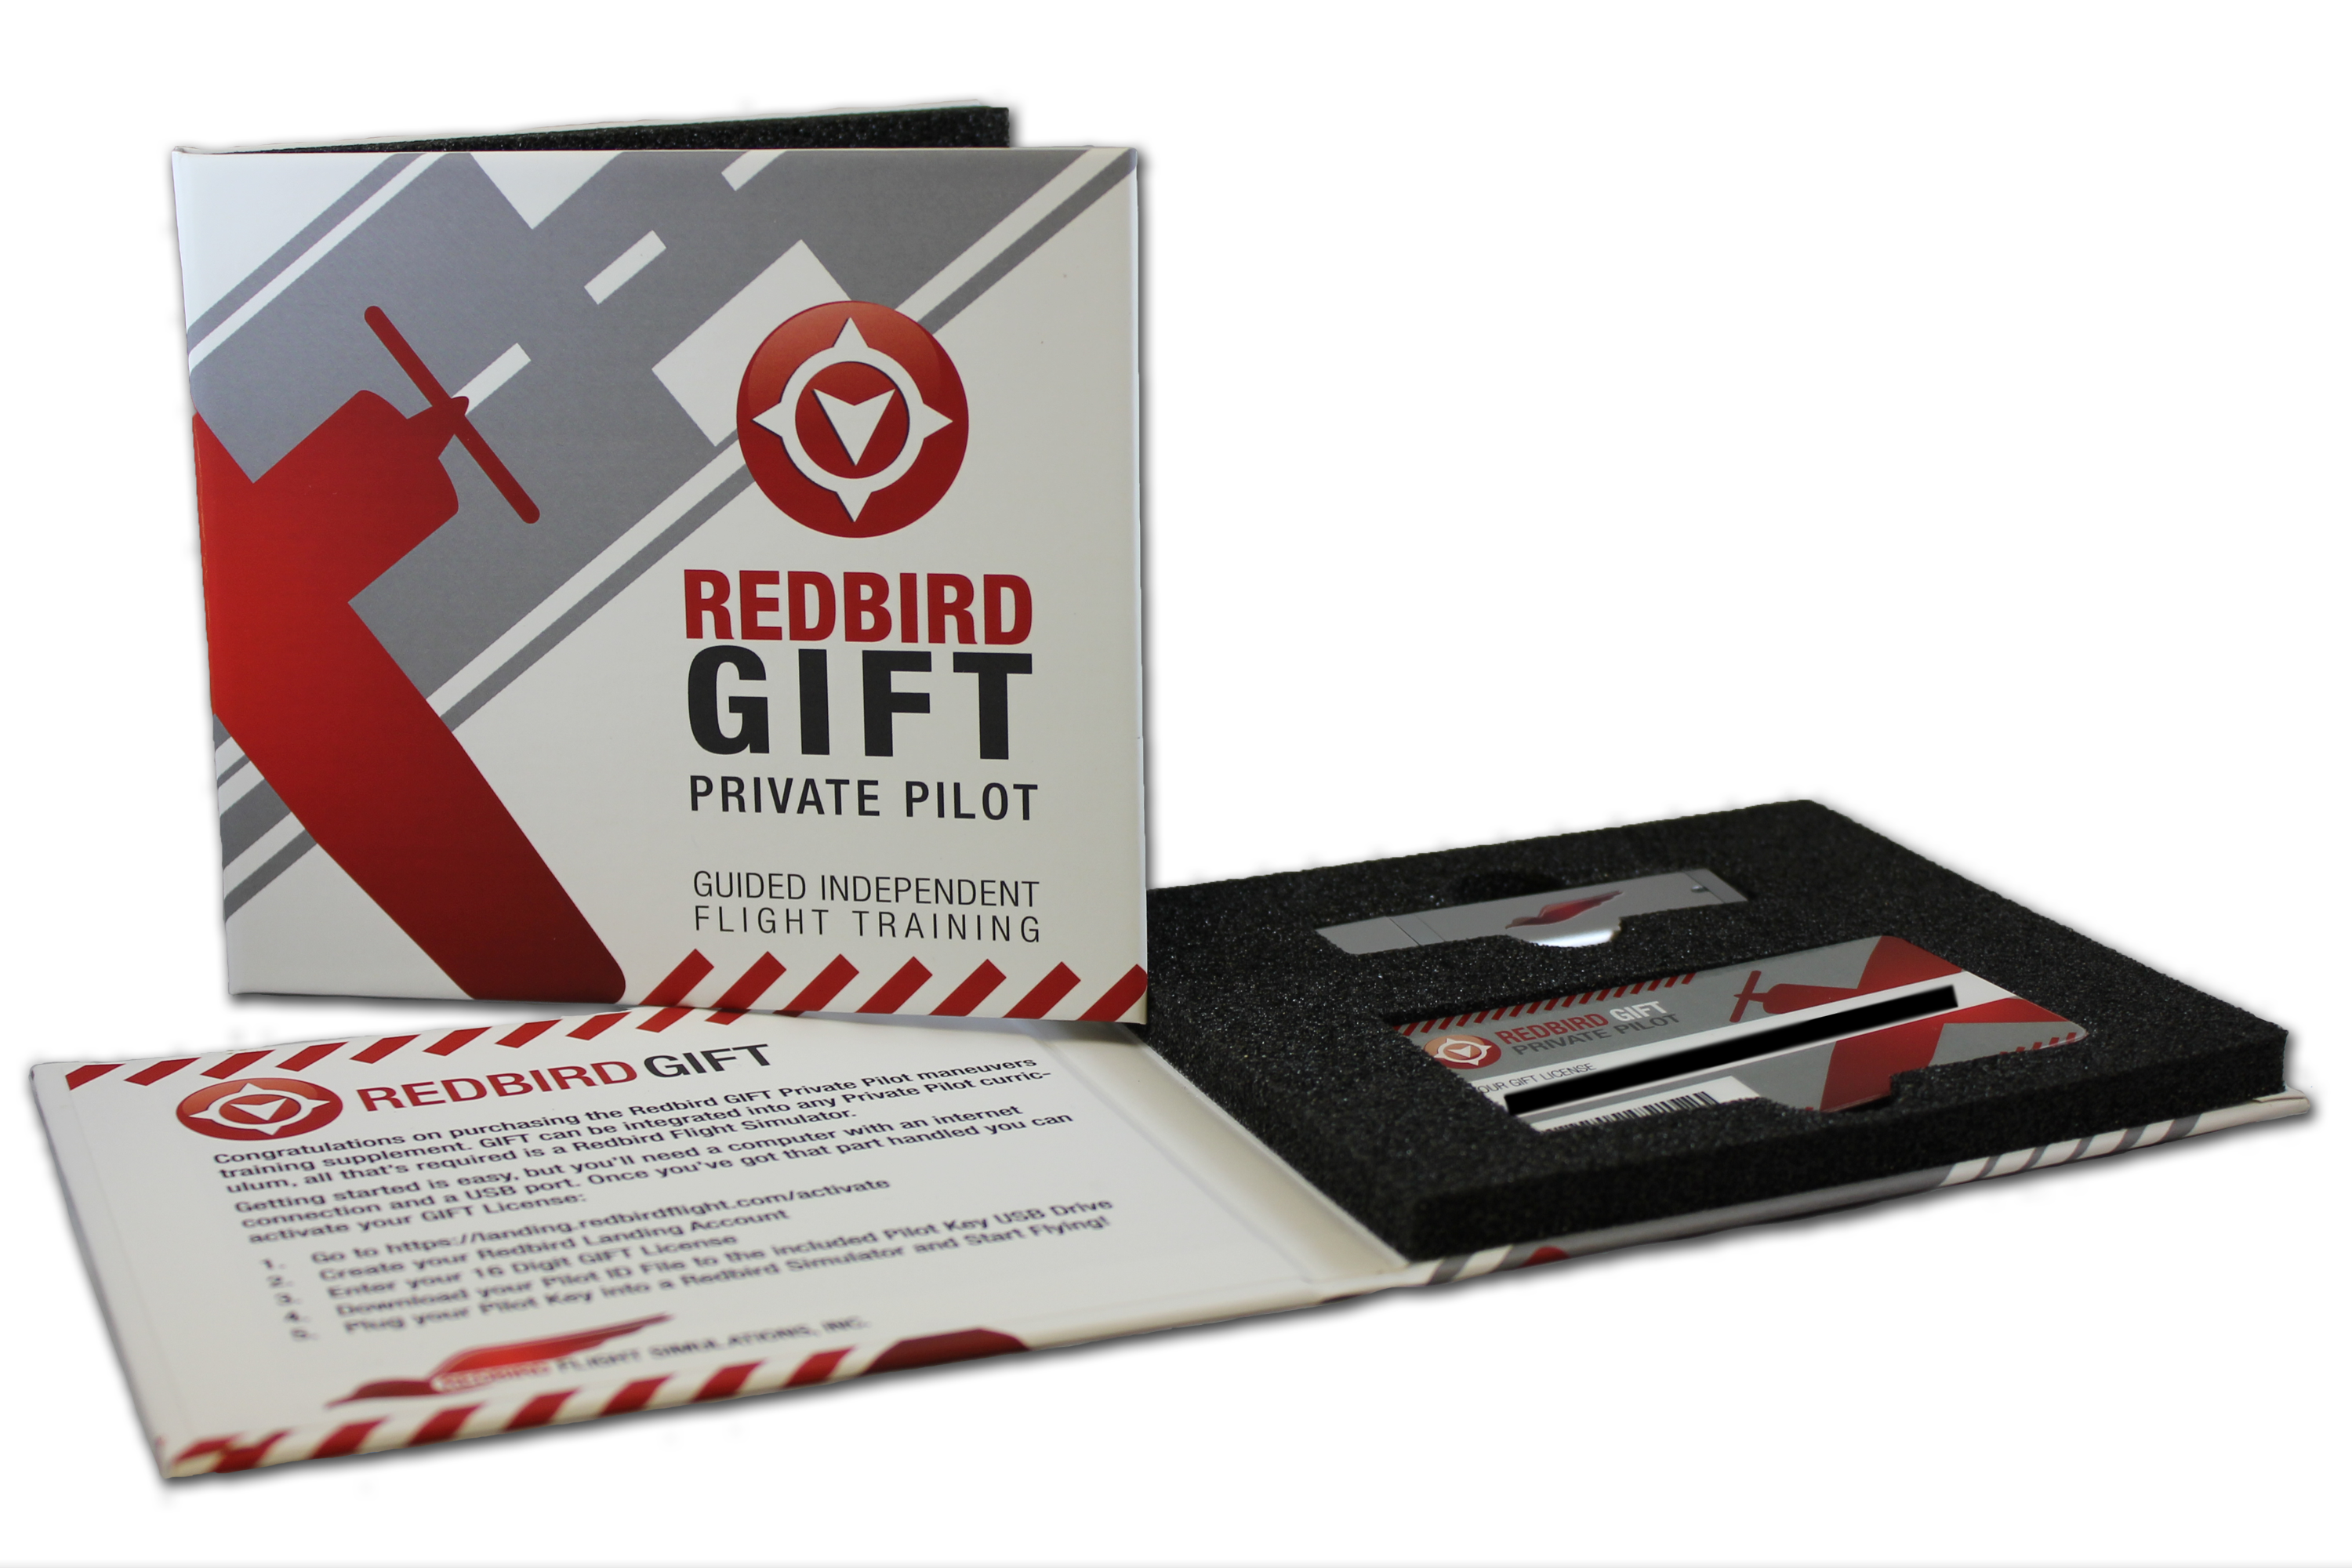 Redbird's Guided Independent Flight Training Software is Now Available